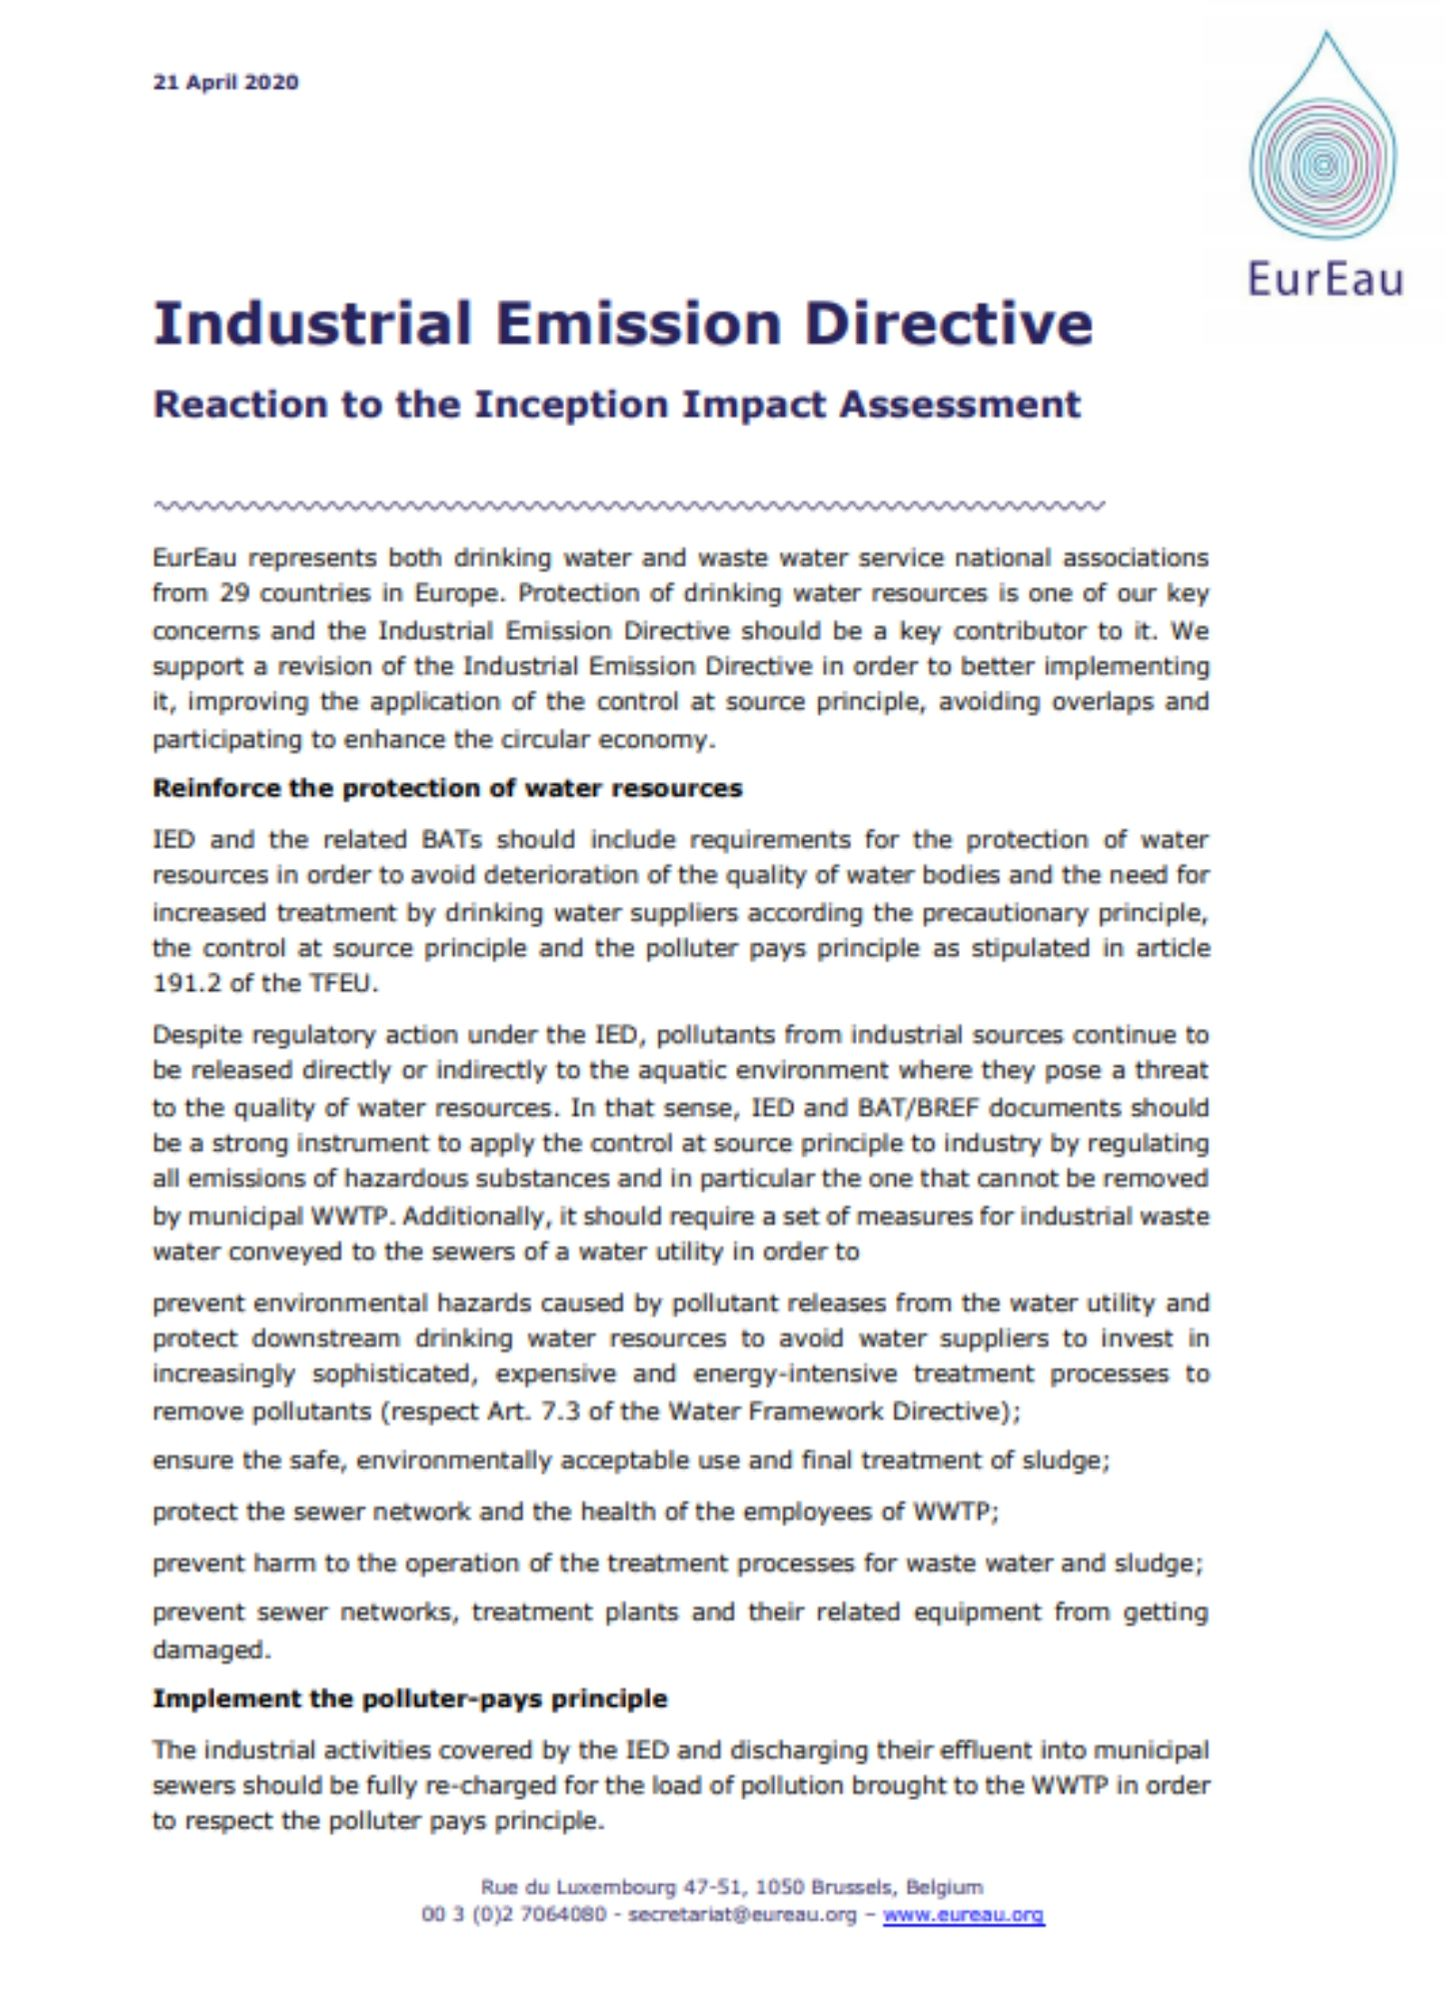 EurEau reaction to the Industrial Emissions Directive - consultation